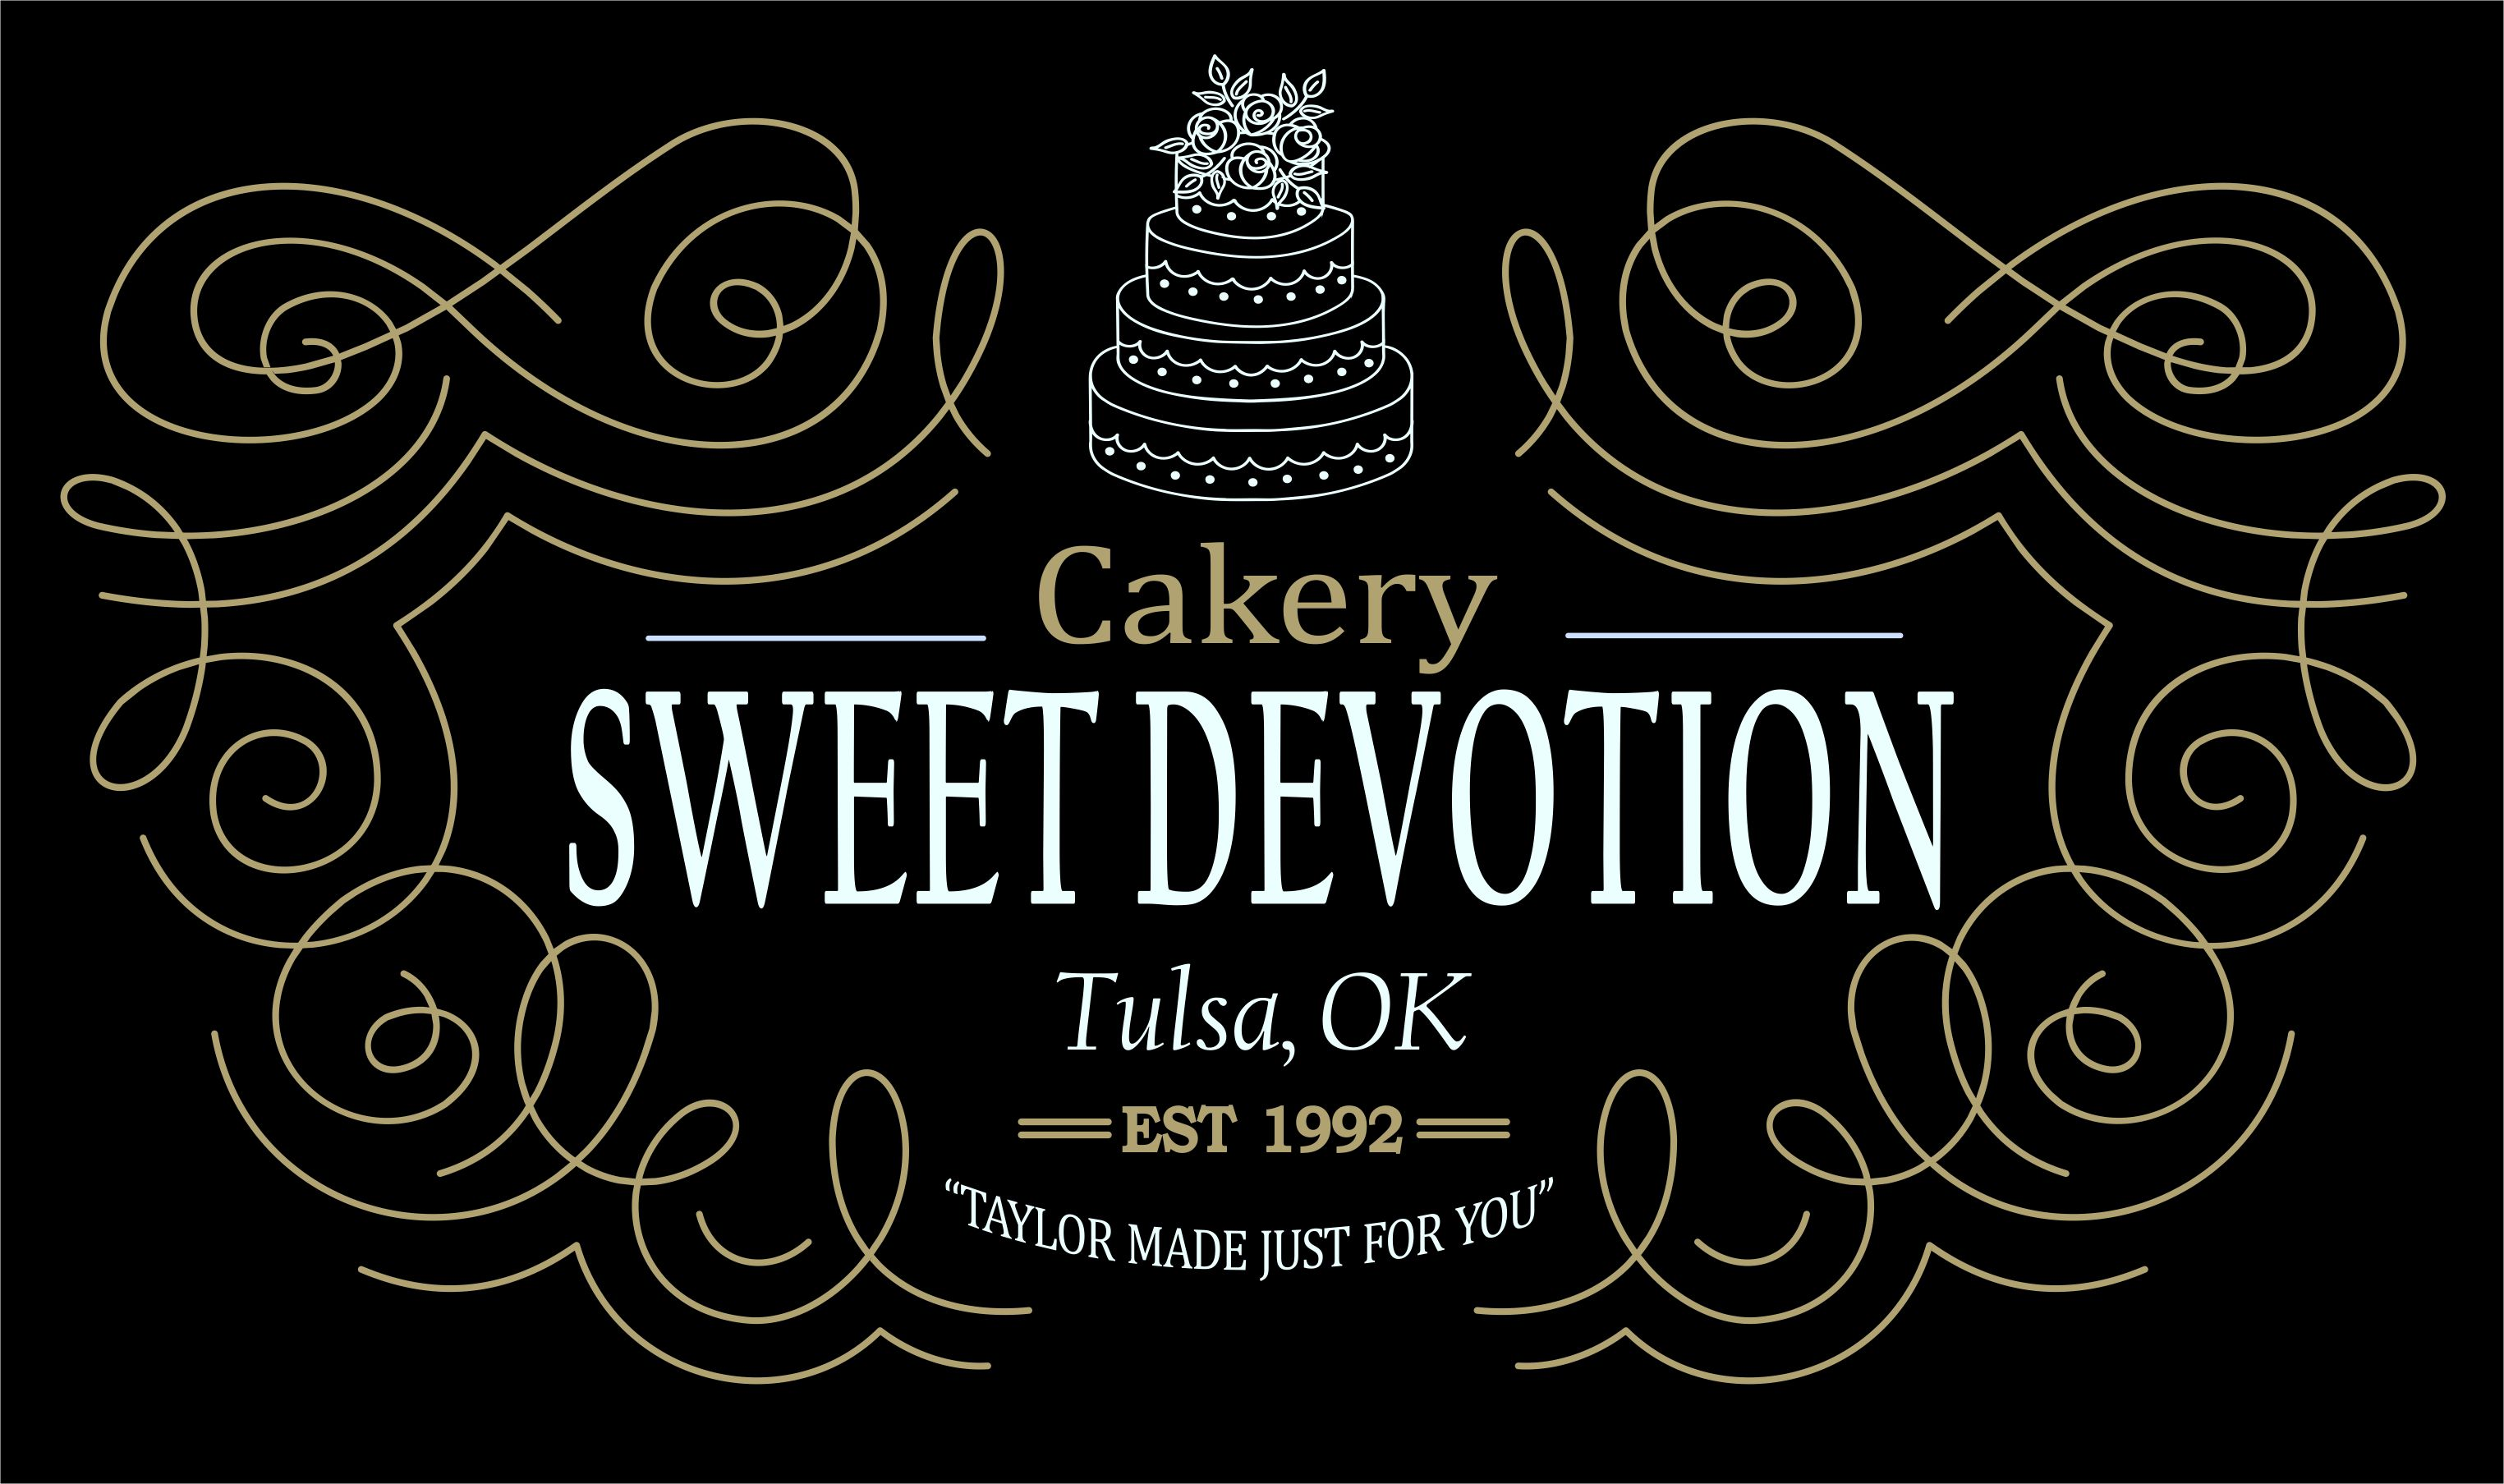 Sweet Devotion Cakery Cakes & Desserts